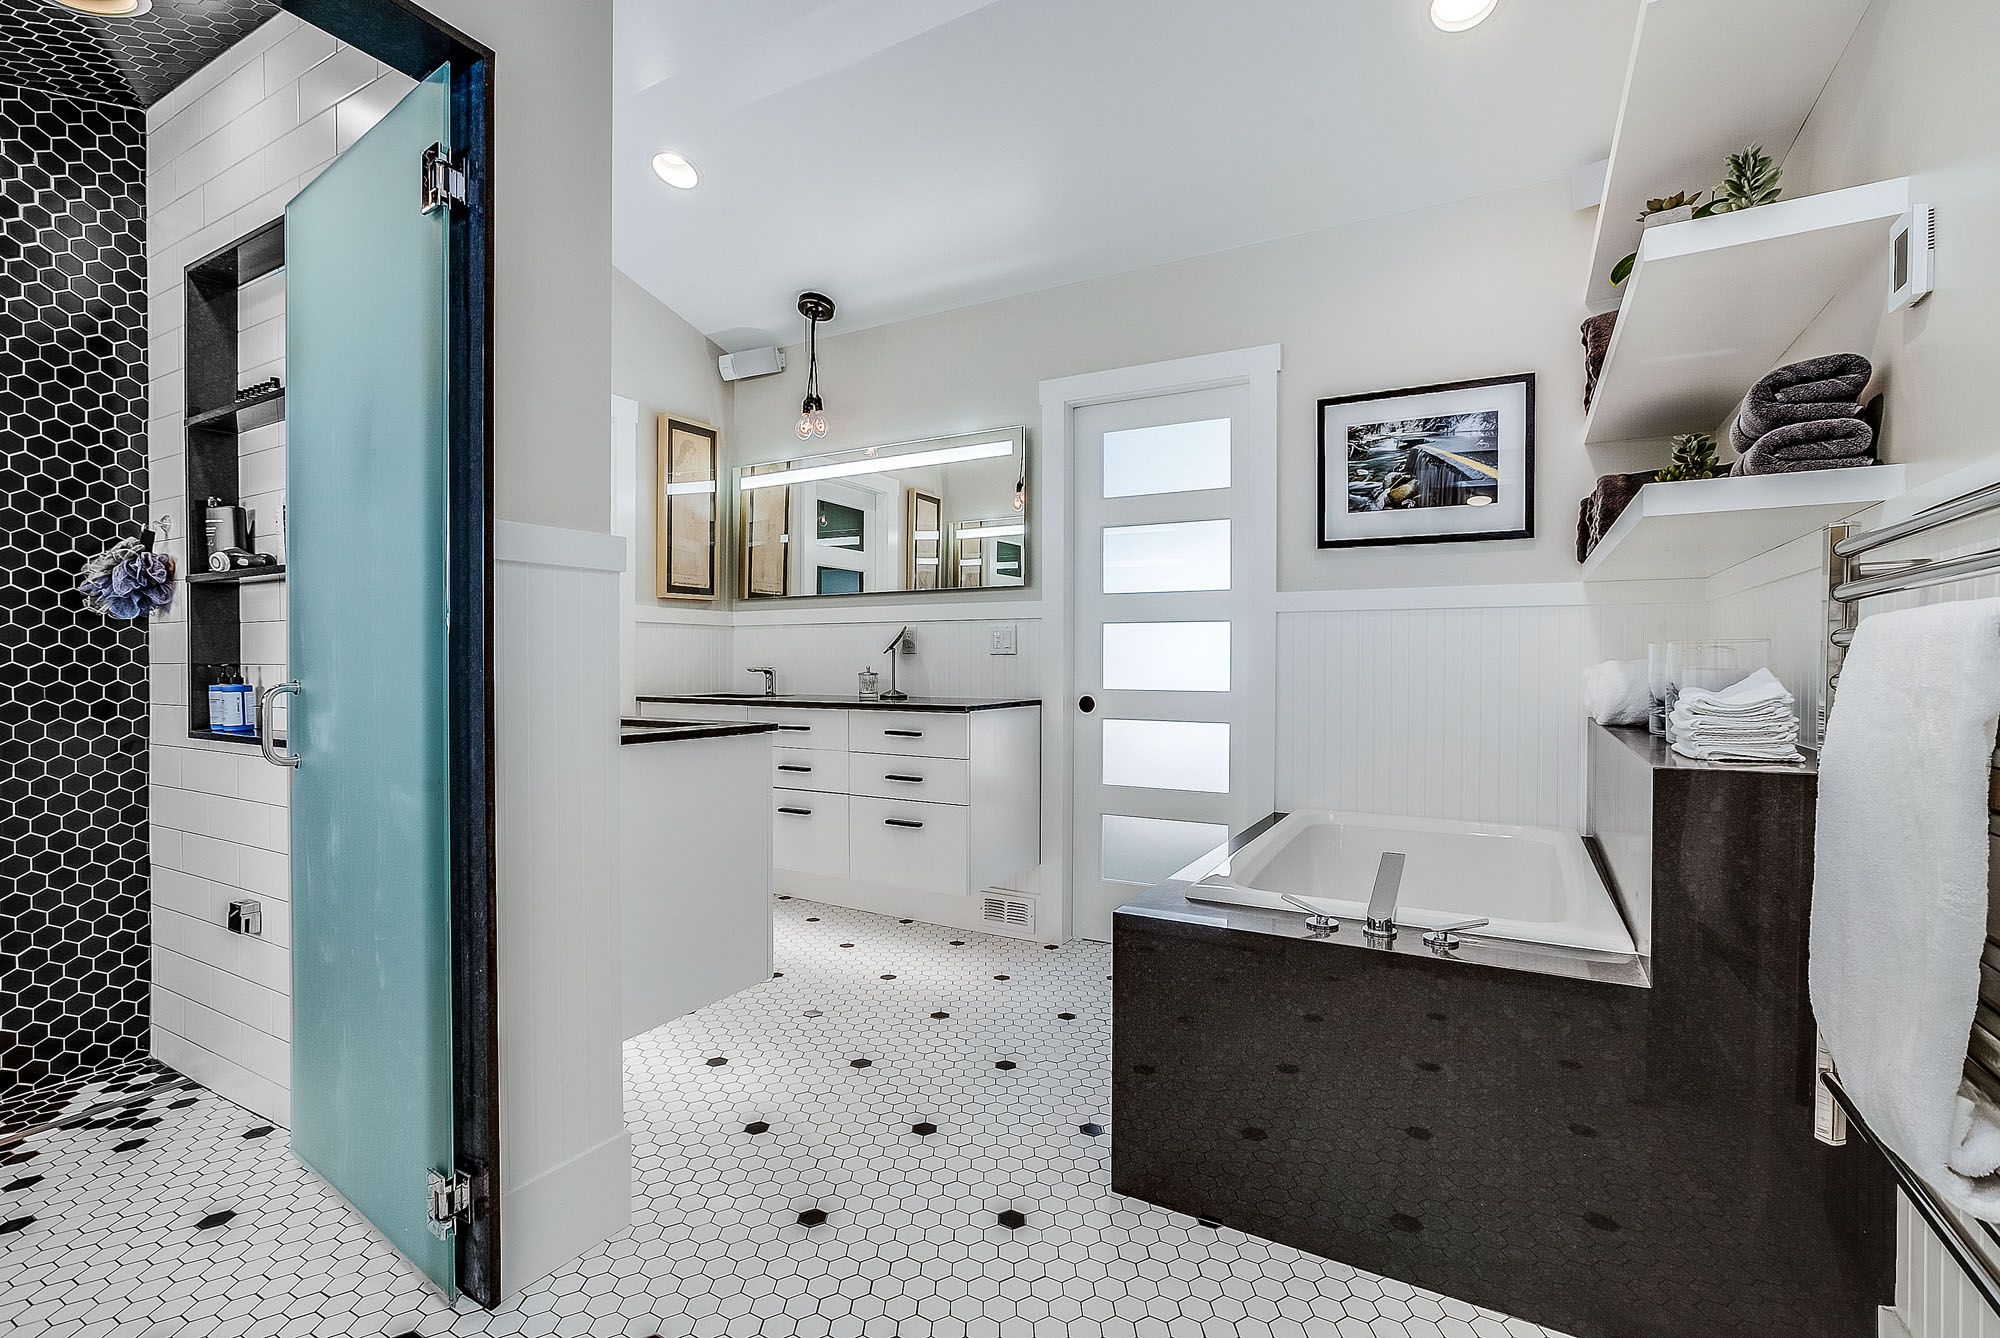 Seventh slide - Black and white master bathroom with tub, vanity and shower room